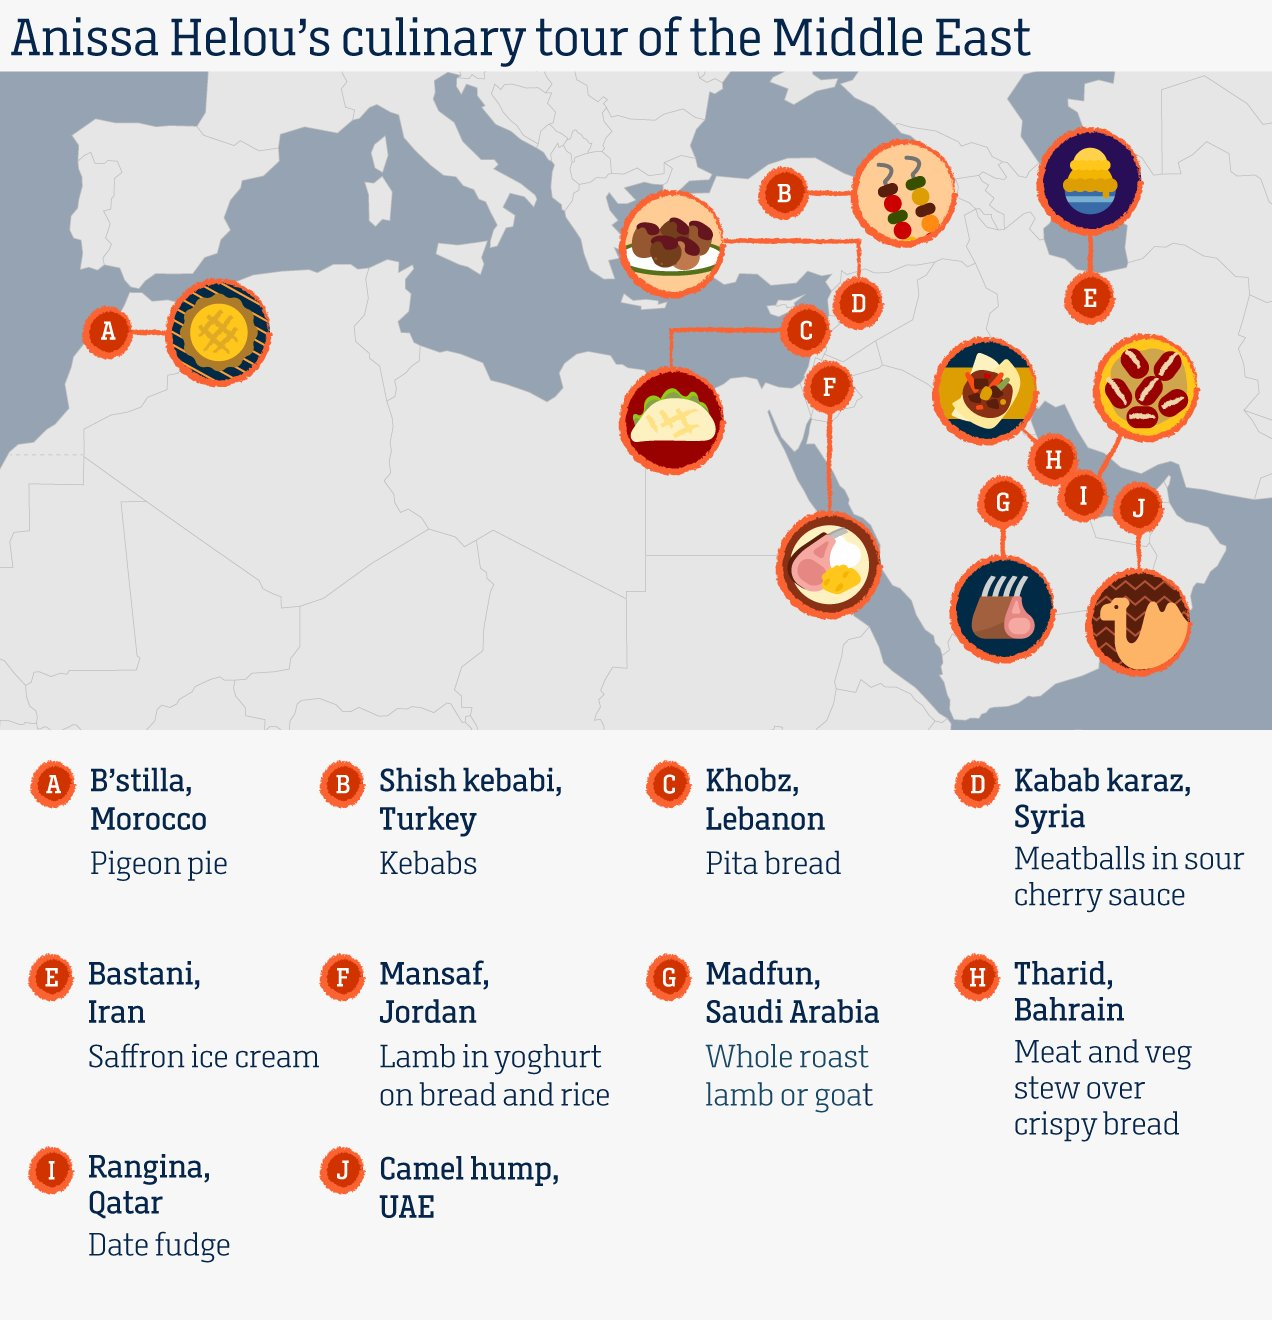 A tour of the Middle East in 10 dishes https://t.co/B0waFF3yNr via @CNNTravel https://t.co/9DaoEO32fq